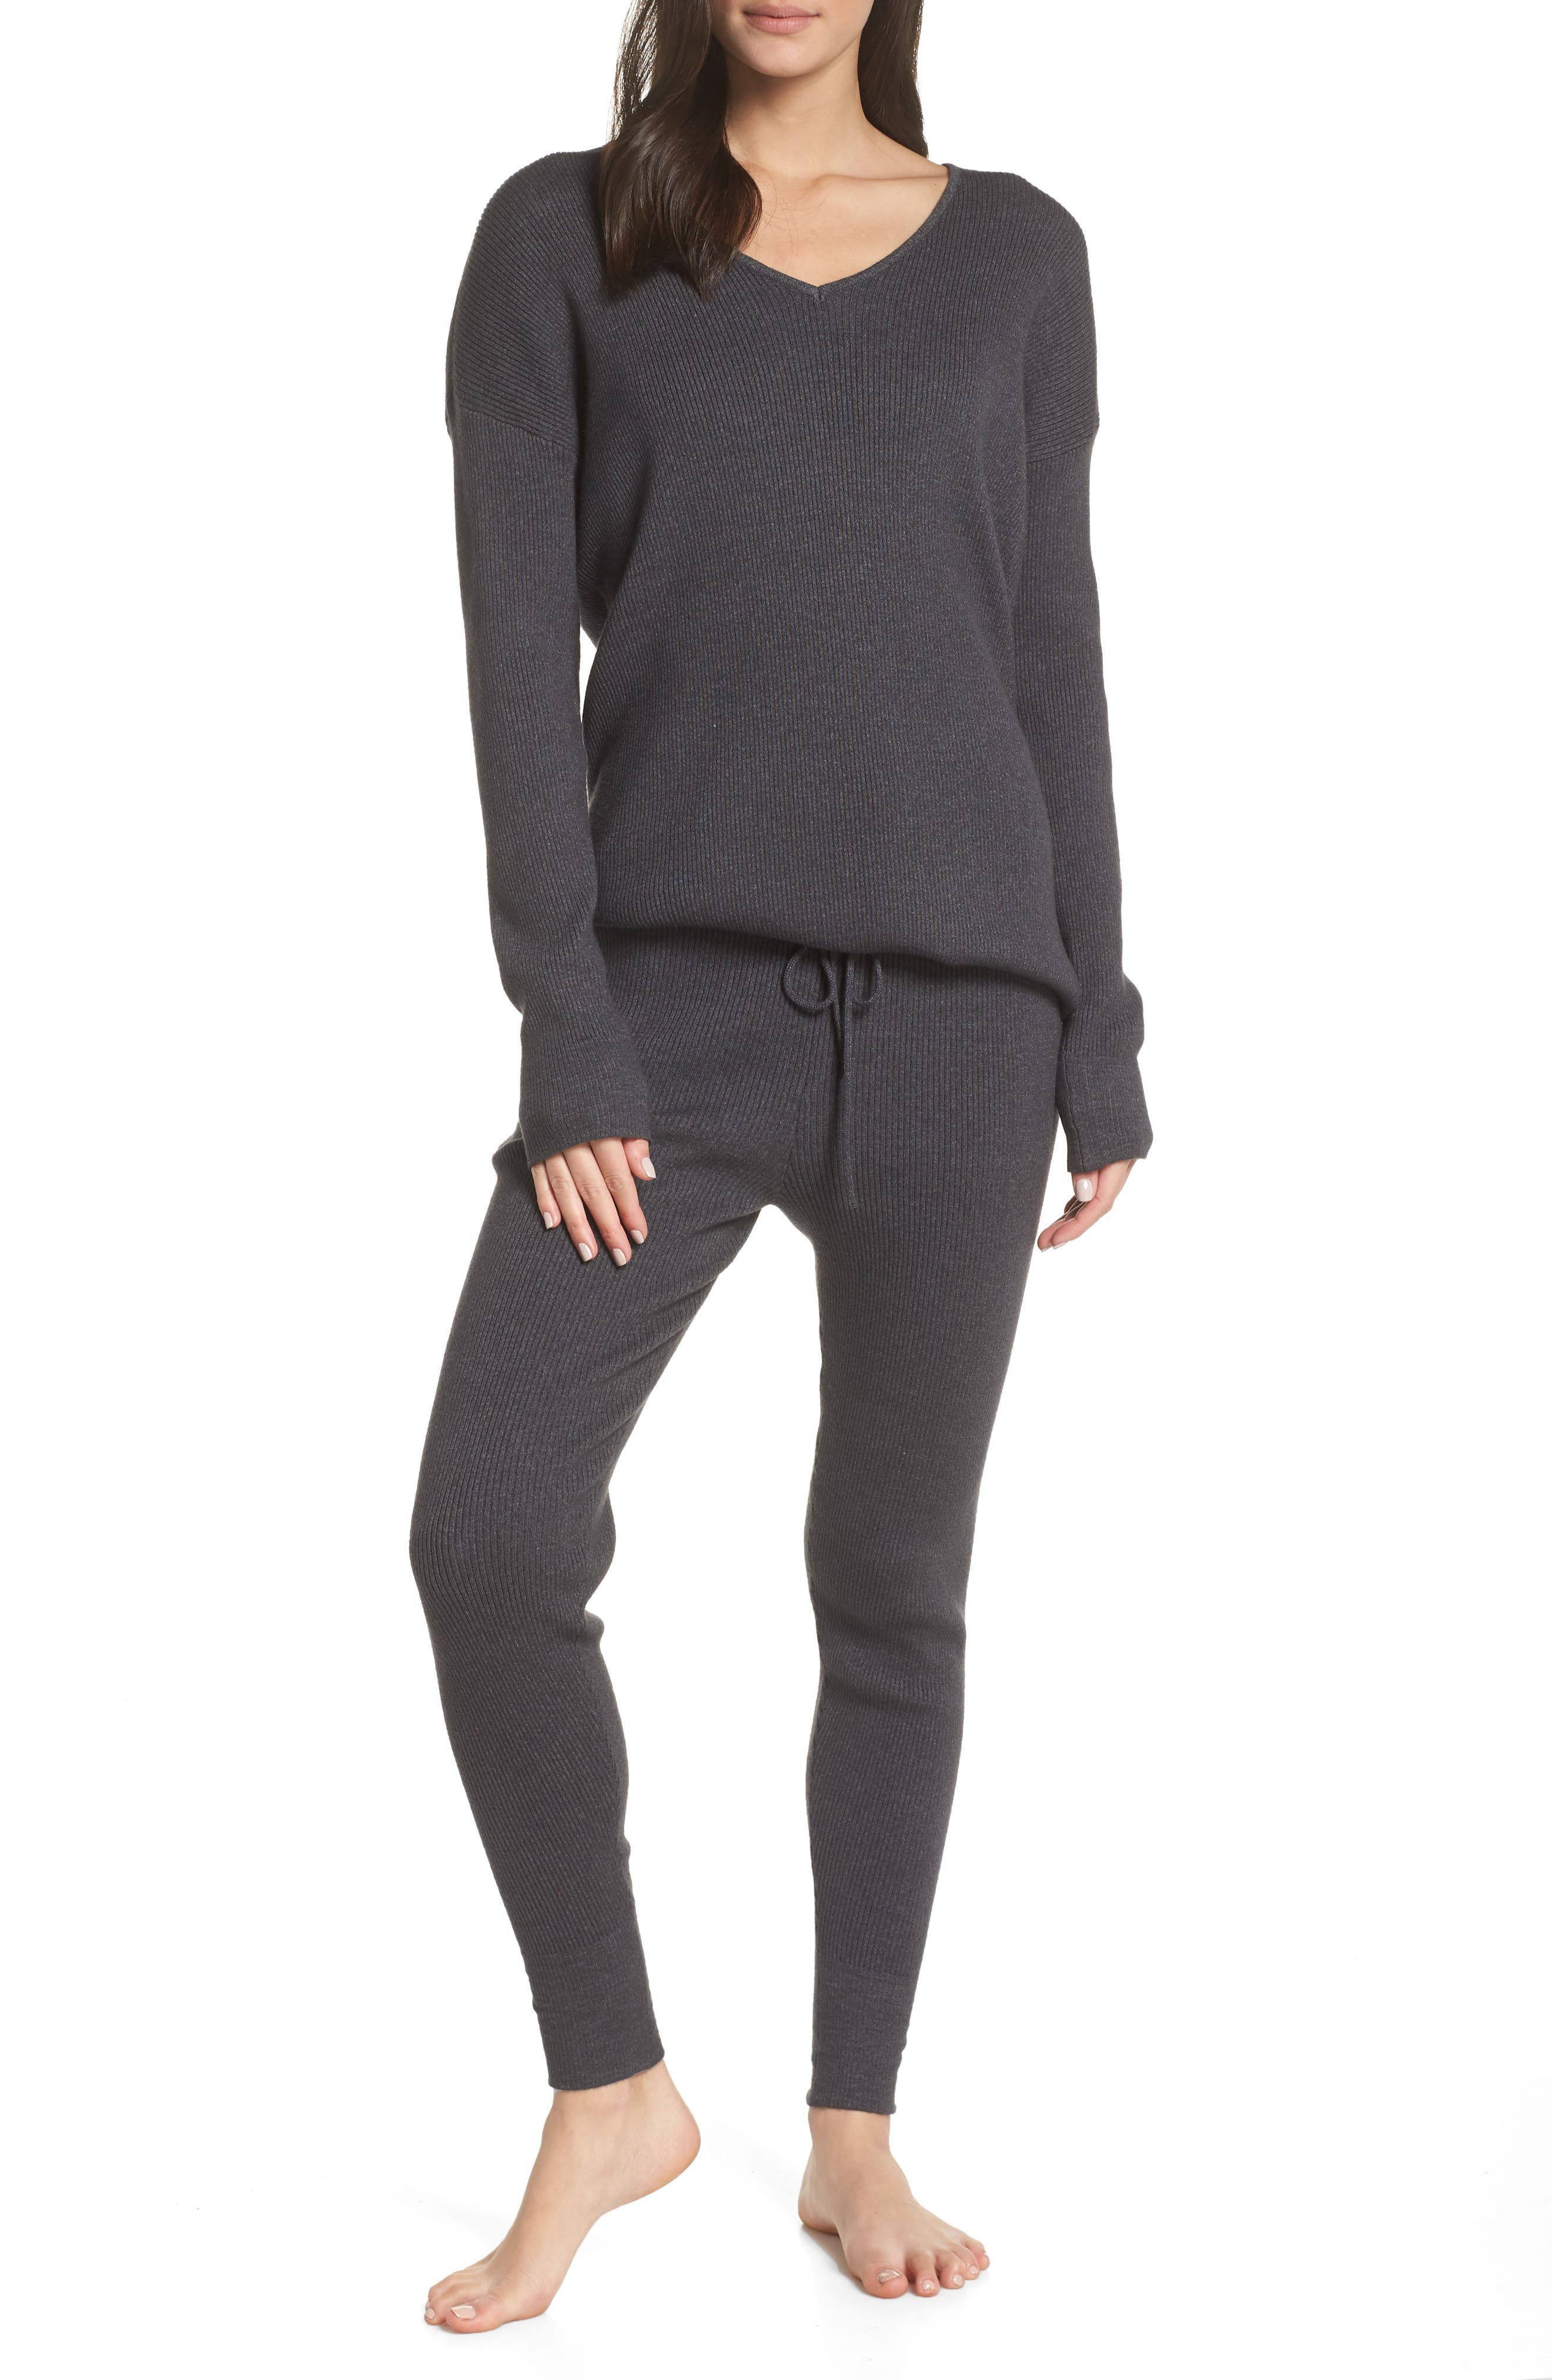 Rib Knit Pullover,                             Alternate thumbnail 7, color,                             GREY MED CHARCOAL HEATHER